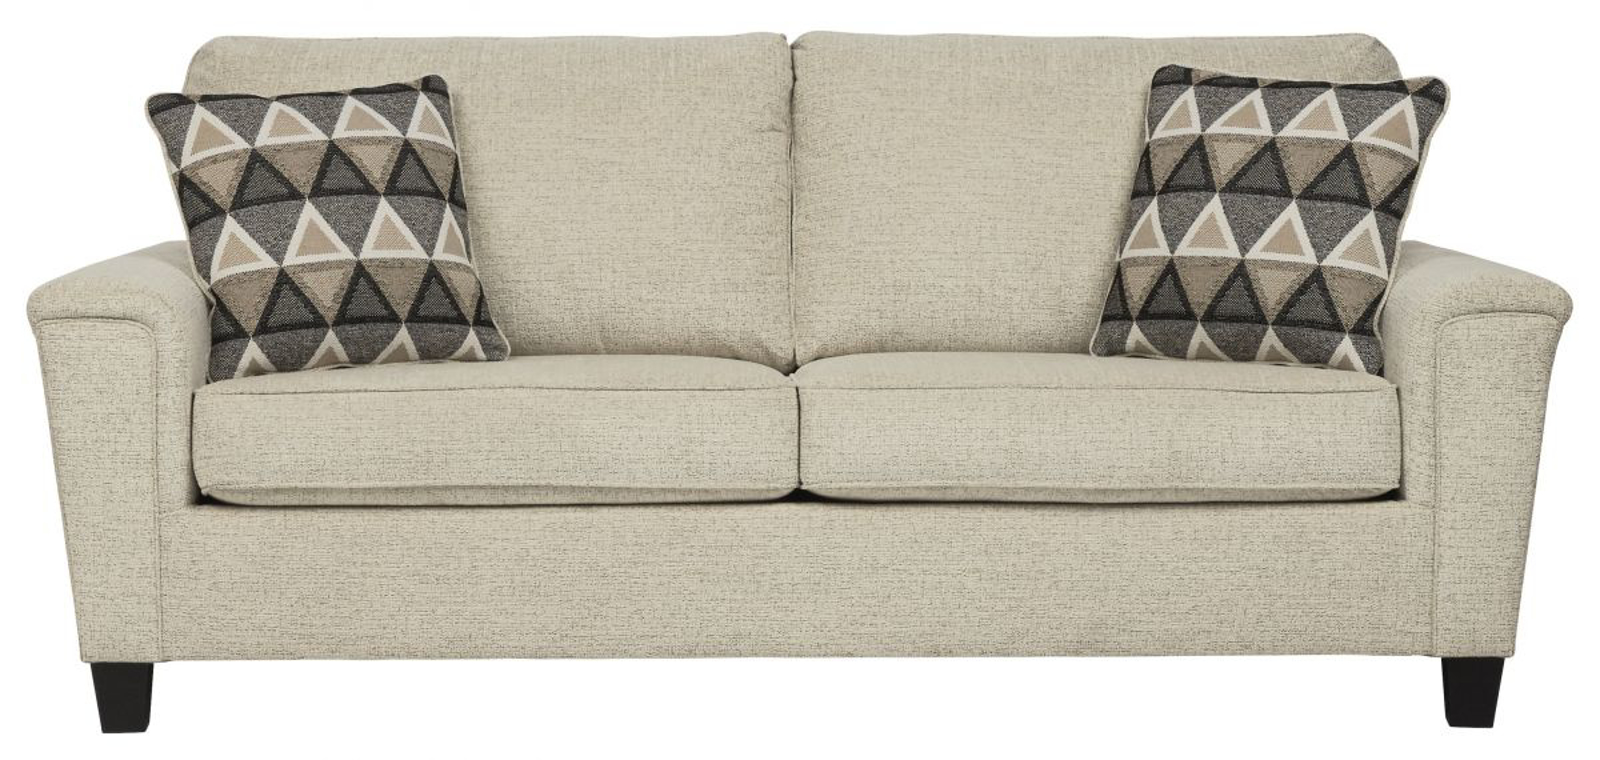 Picture of Abinger Sofa